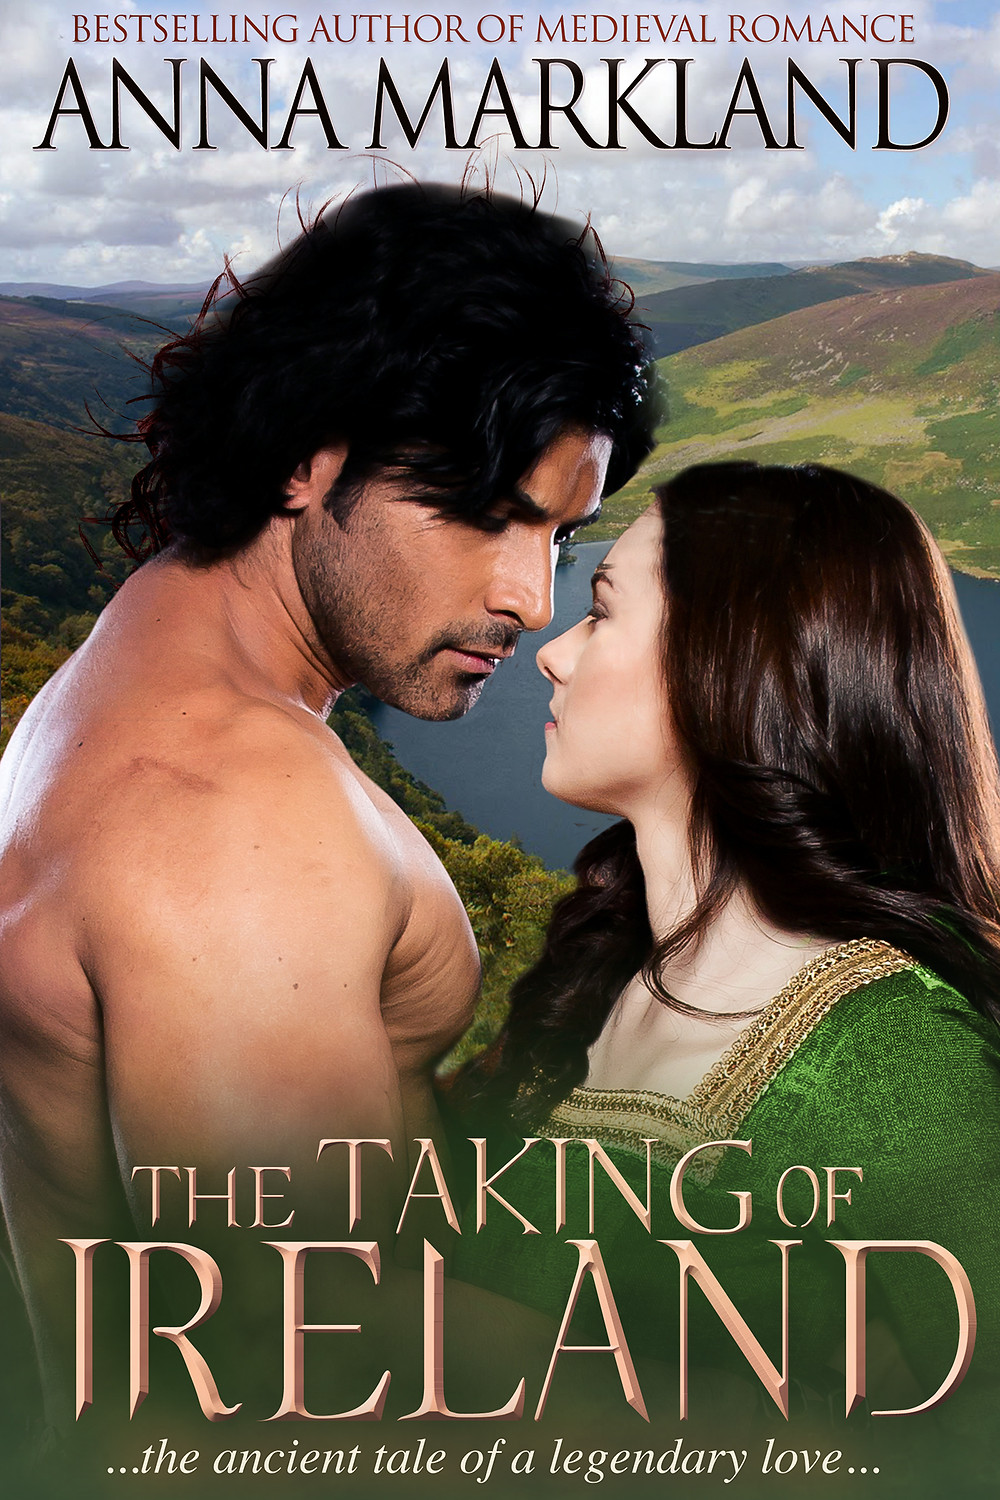 THE TAKING OF IRELAND by Anna Markland